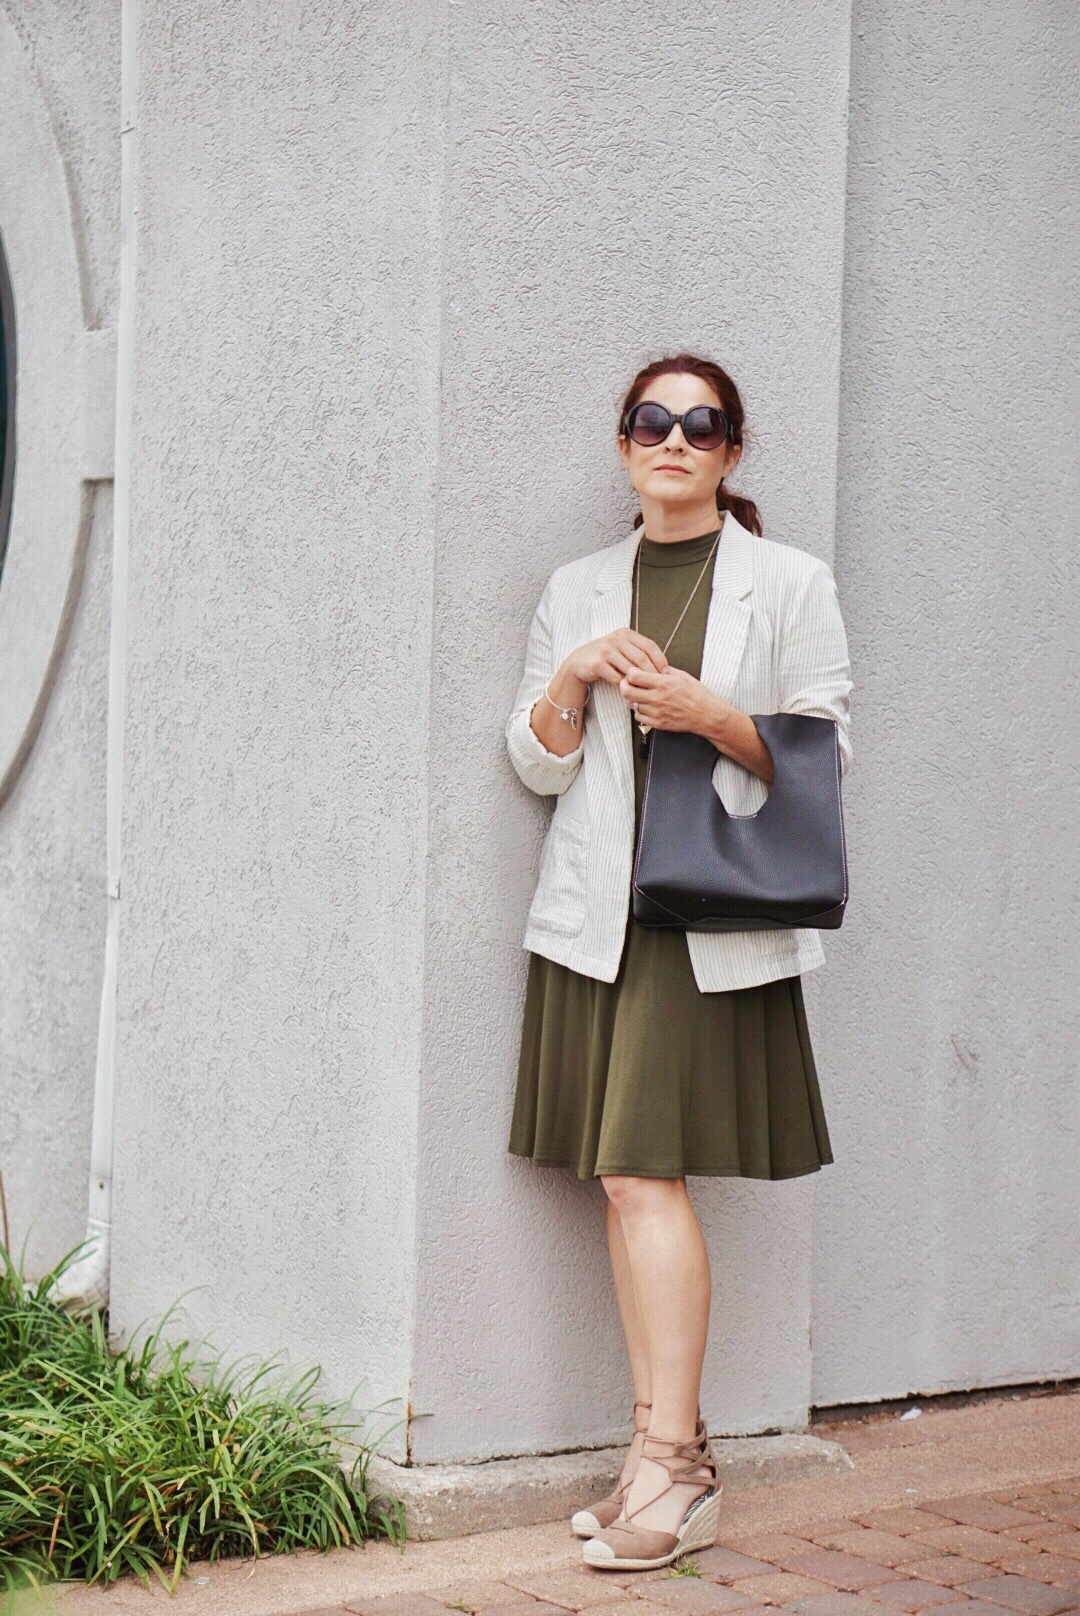 summer to fall style inspiration, transitional styling tips, summer blazers, olive green dresses, wedges, blogger survey